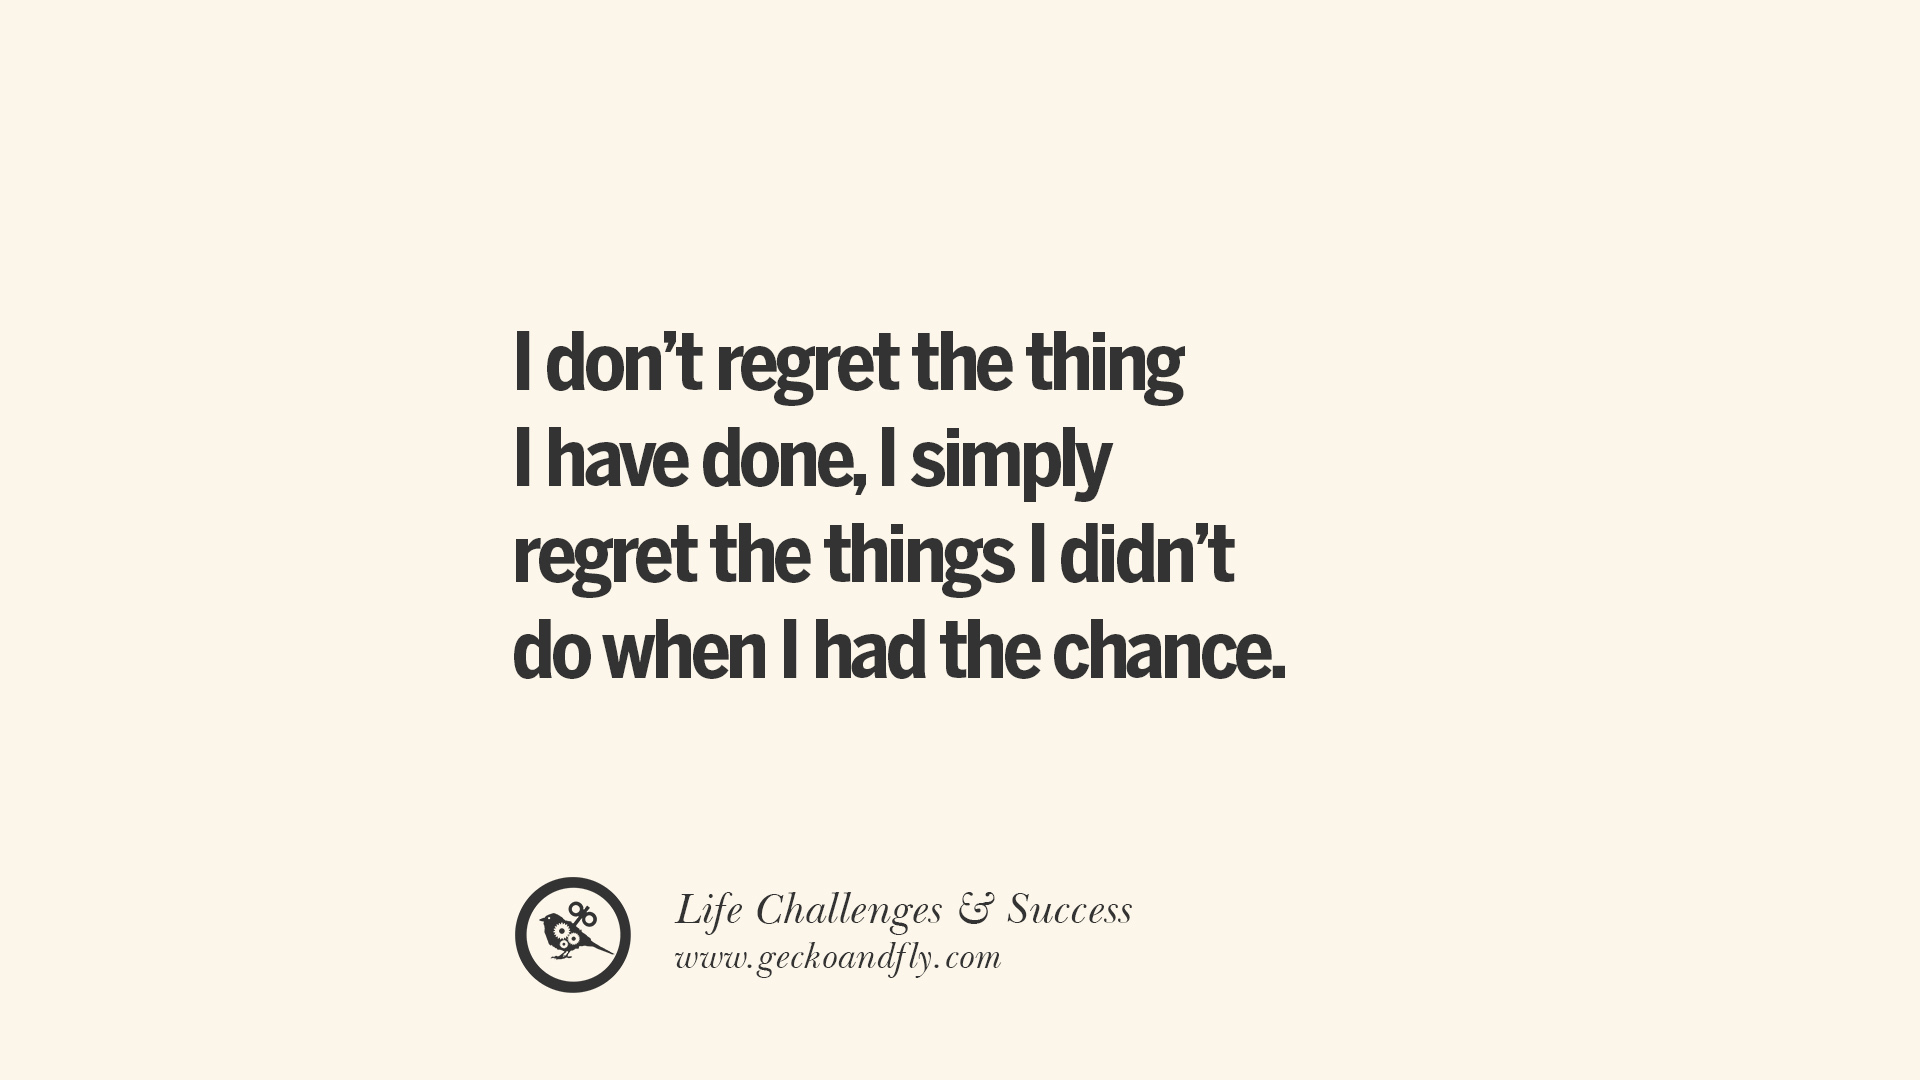 I Chance Dont Regret I Things Regret I Things Had I Didnt Do Have Wen I Done